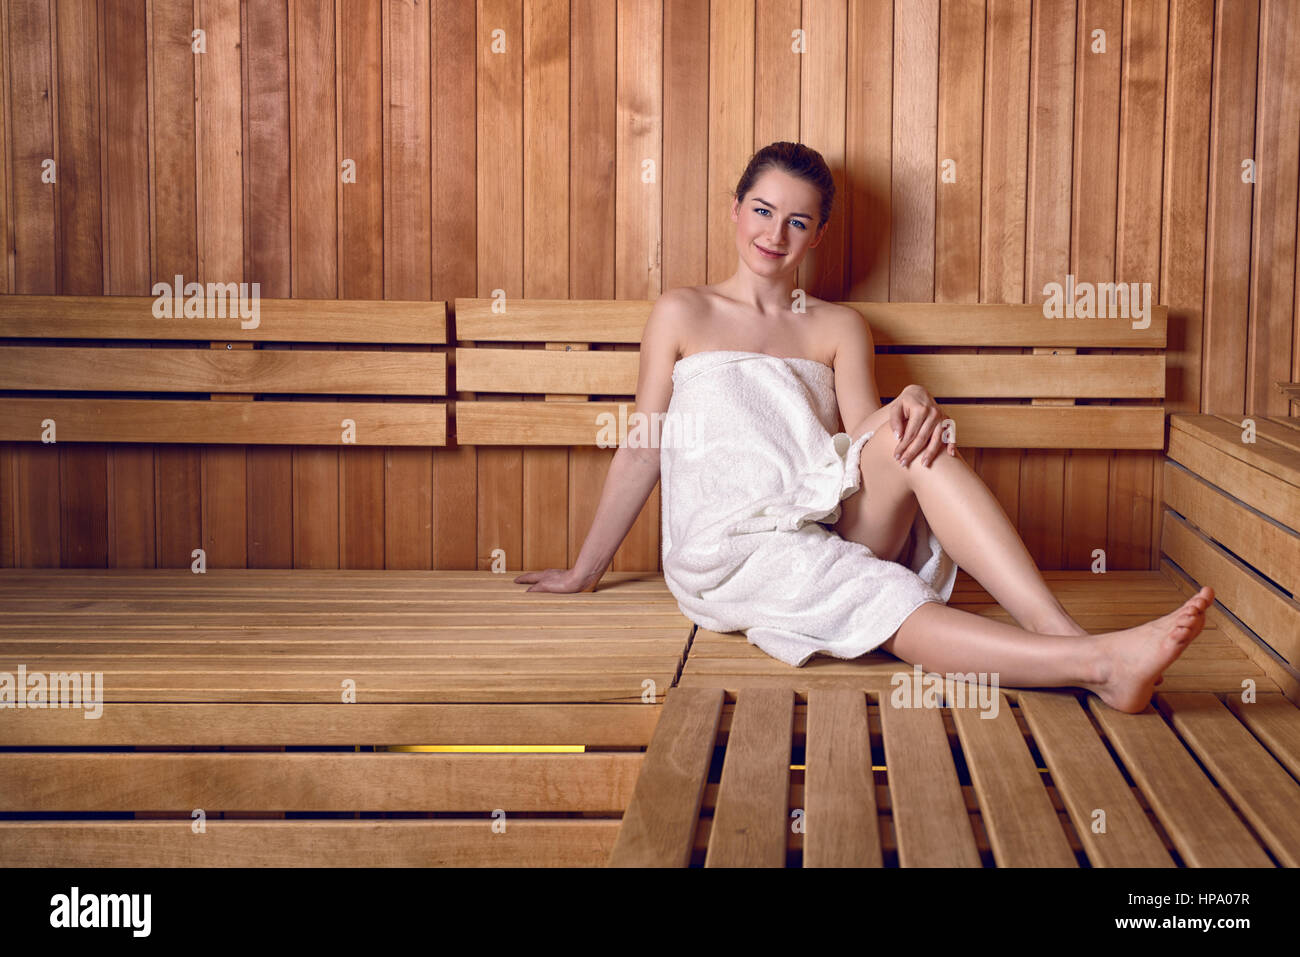 Side view full length portrait of young woman smiling sitting on wooden sofa bench in sauna wrapped in white towel, - Stock Image